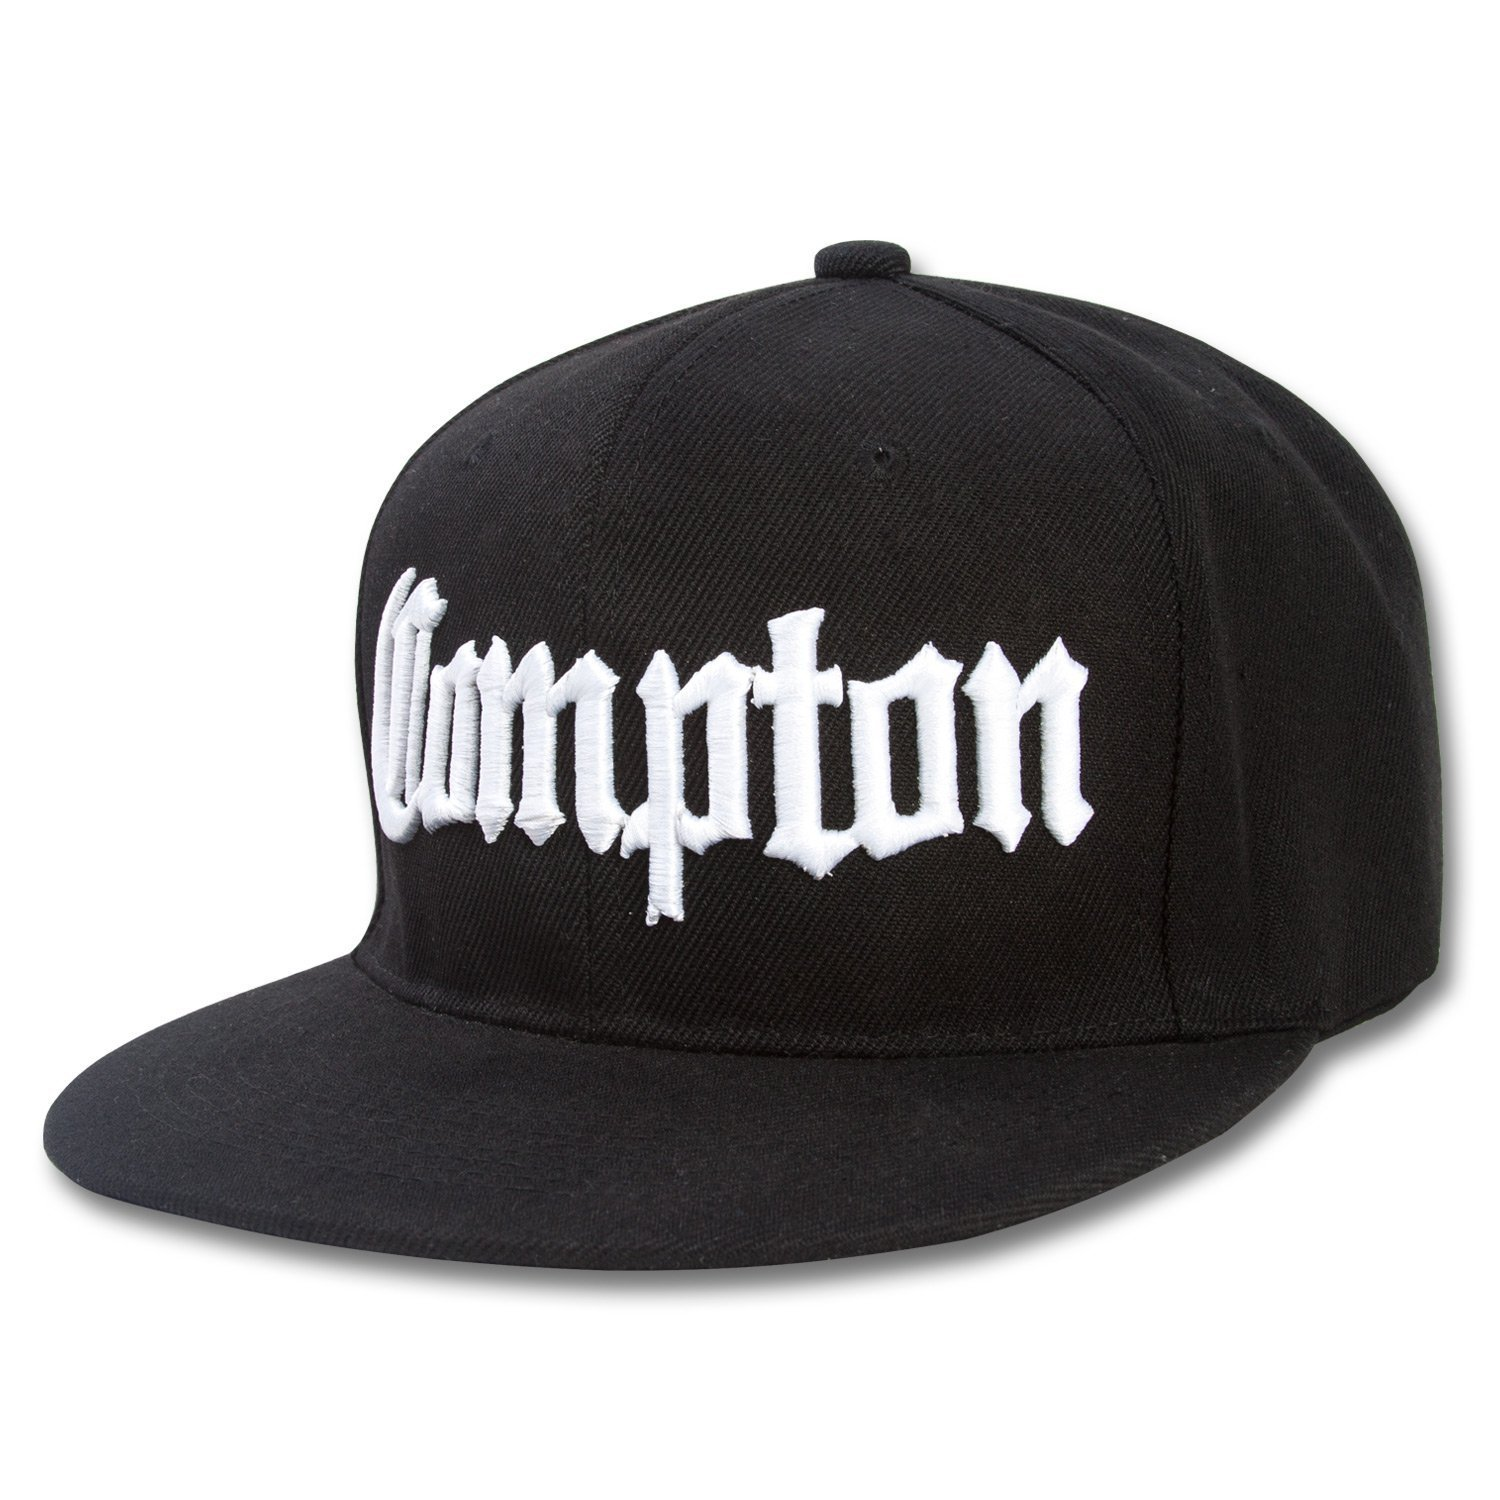 14906f14870 Amazon.com  Compton Flat Bill Snapback Black Adjustable Baseball Cap   Sports   Outdoors